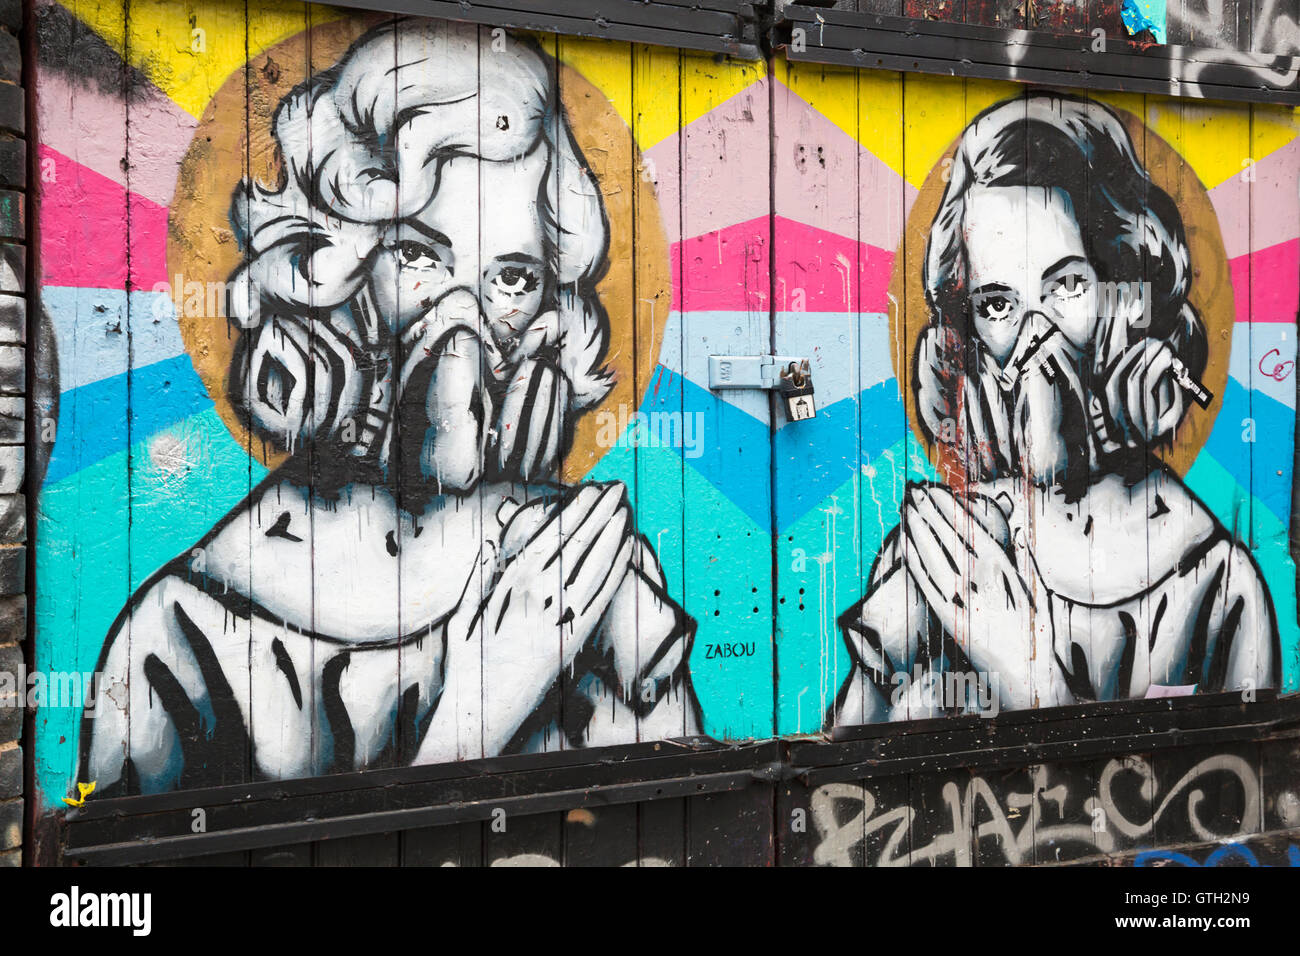 colourful mural graffiti of two women with spray cans and ...Graffiti Spray Can With Face